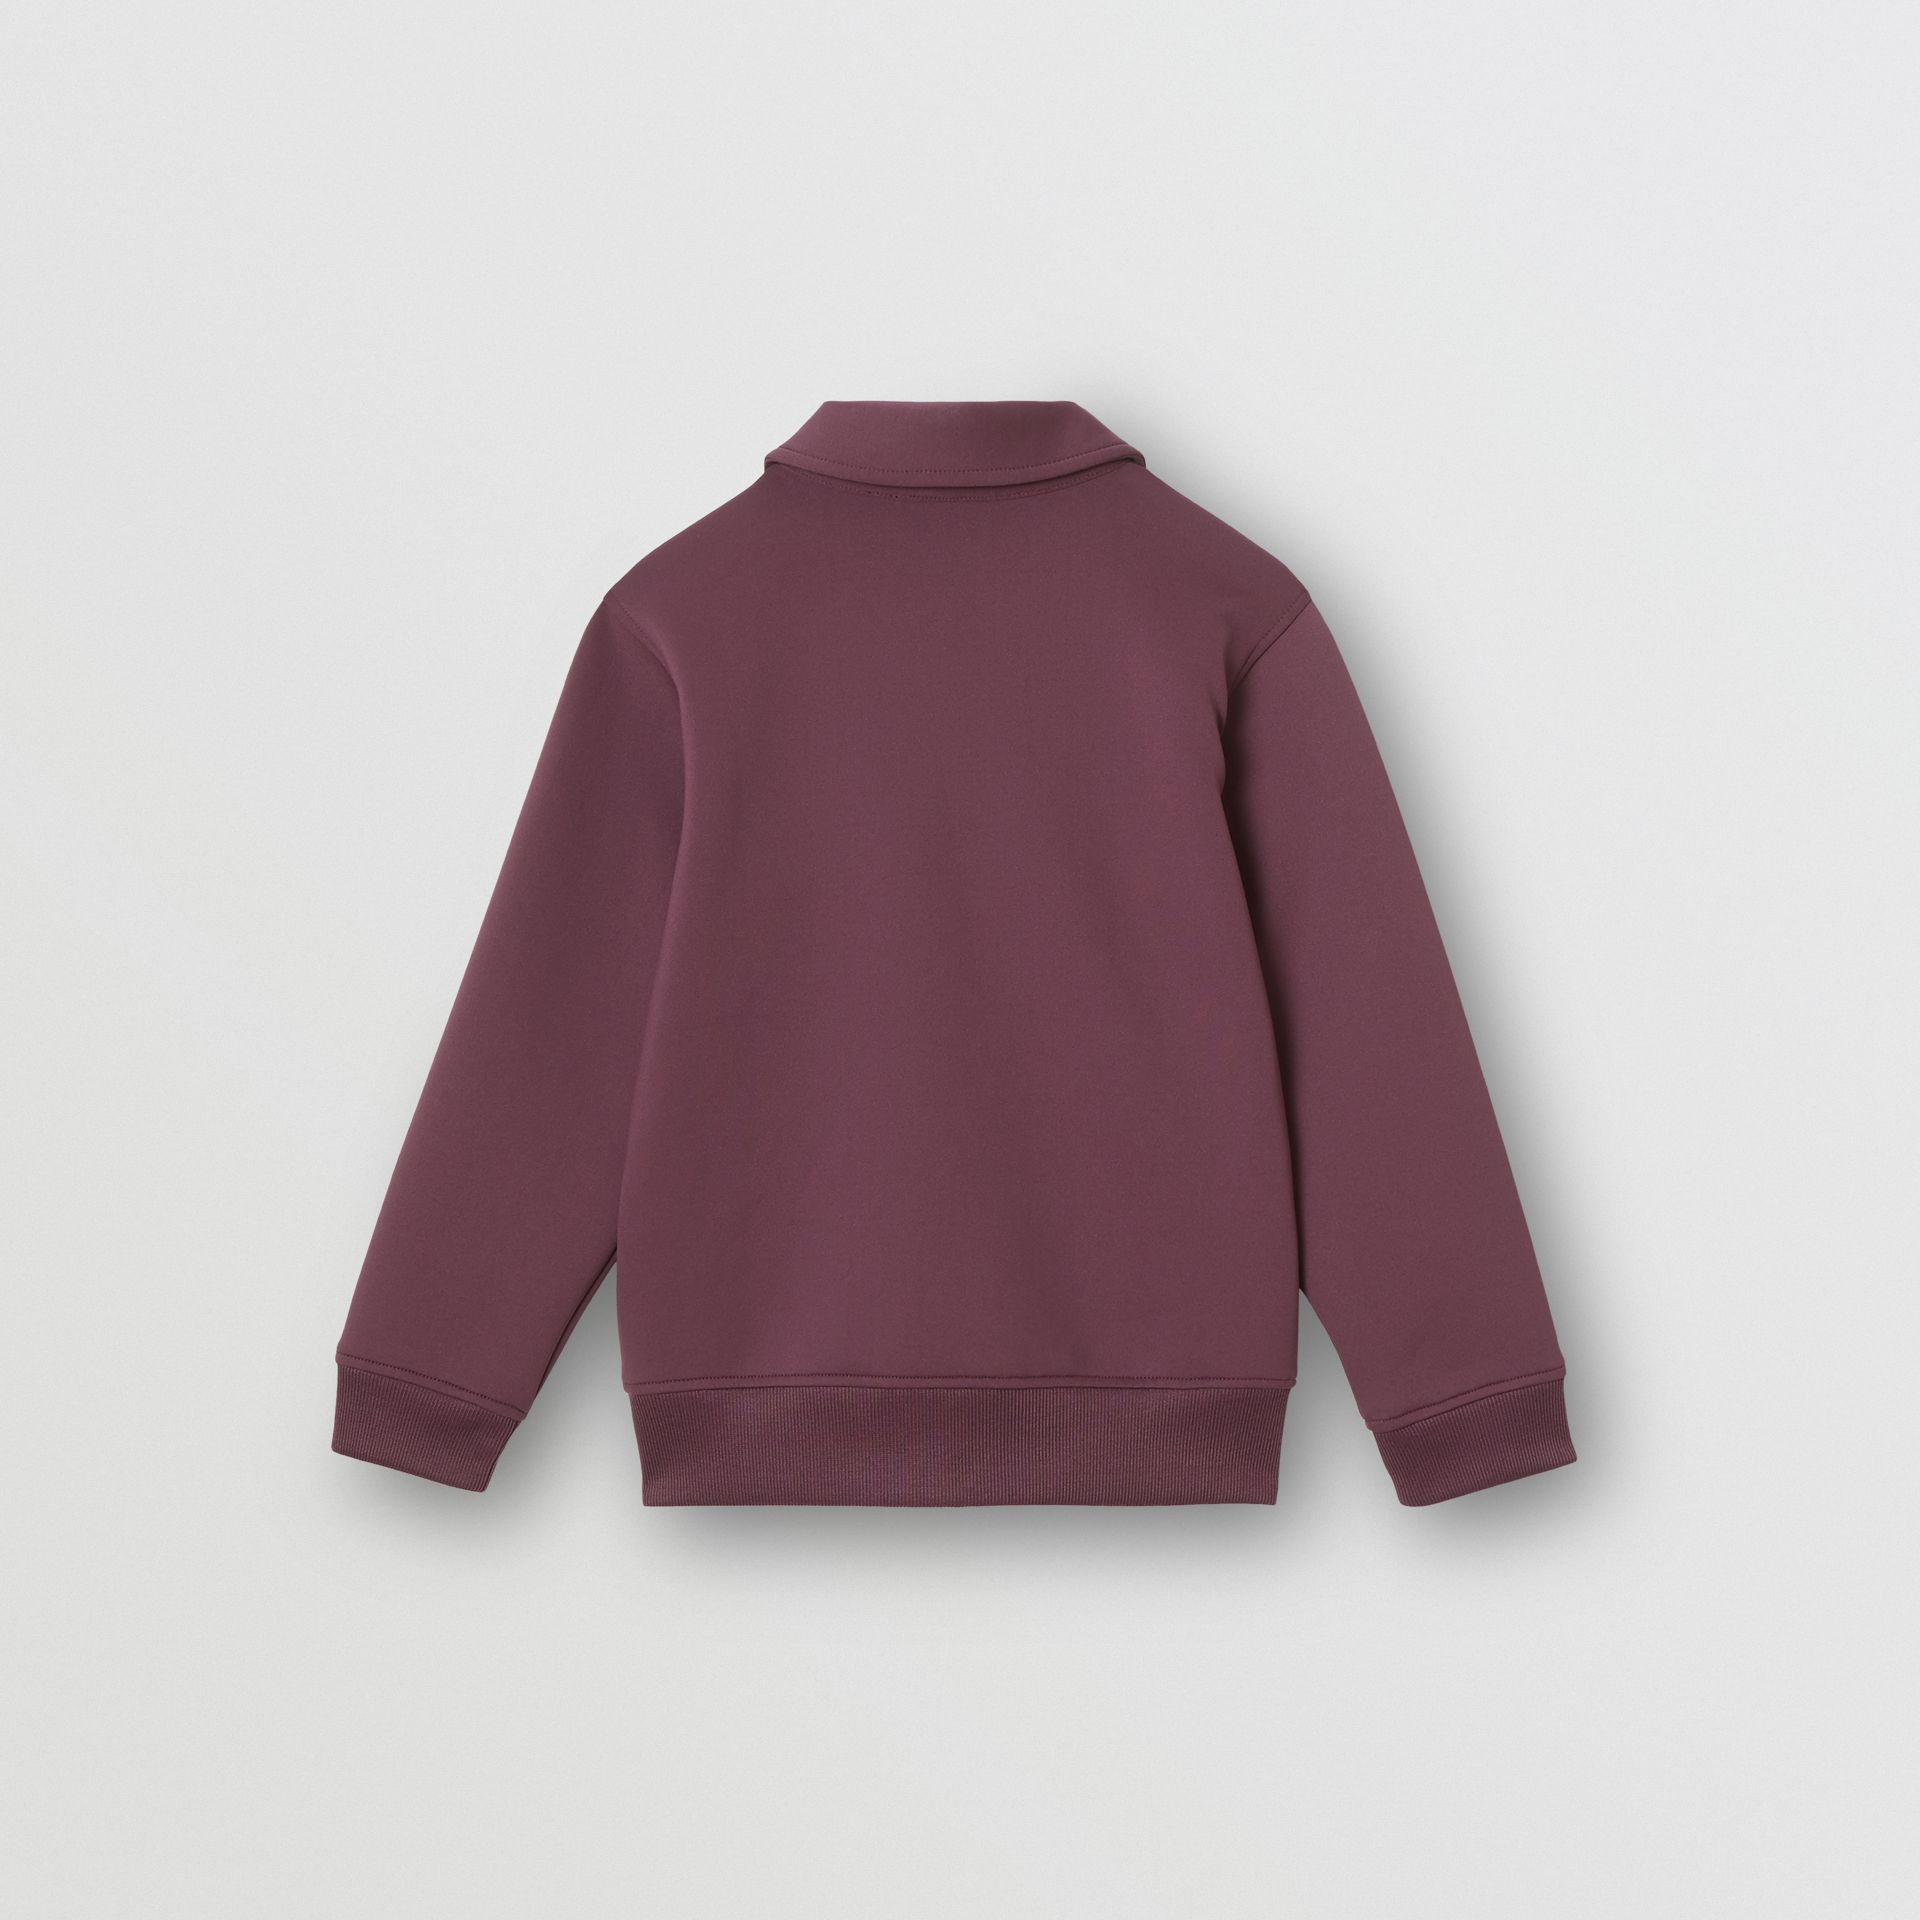 Logo Print Lightweight Track Top in Claret - Children | Burberry - gallery image 4